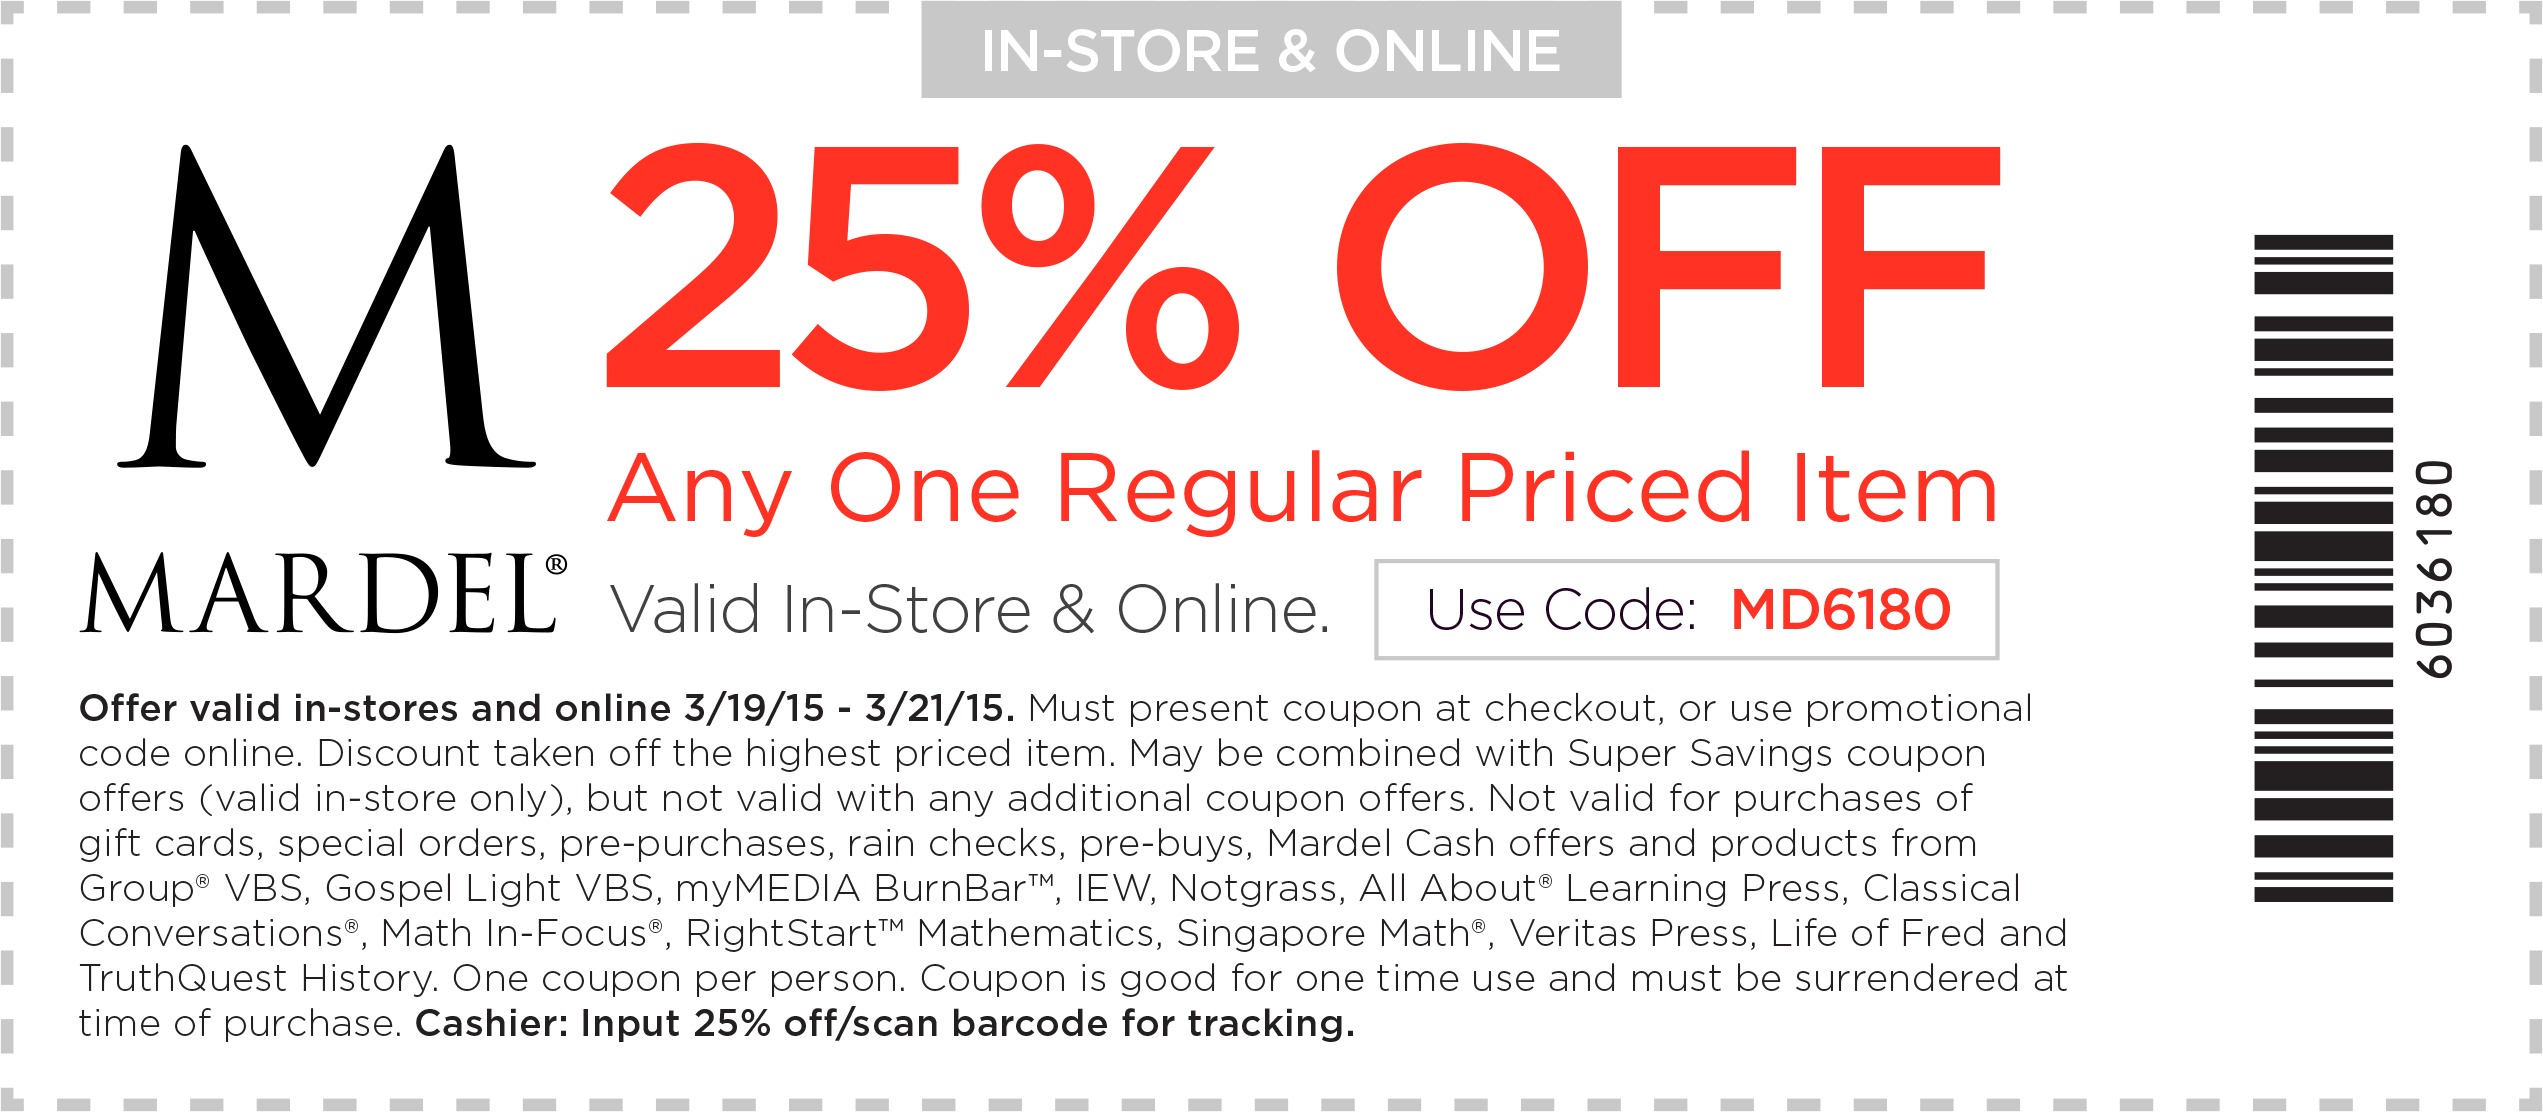 Mardel Coupon July 2018 25% off a single item today at Mardel, or online via promo code MD6180